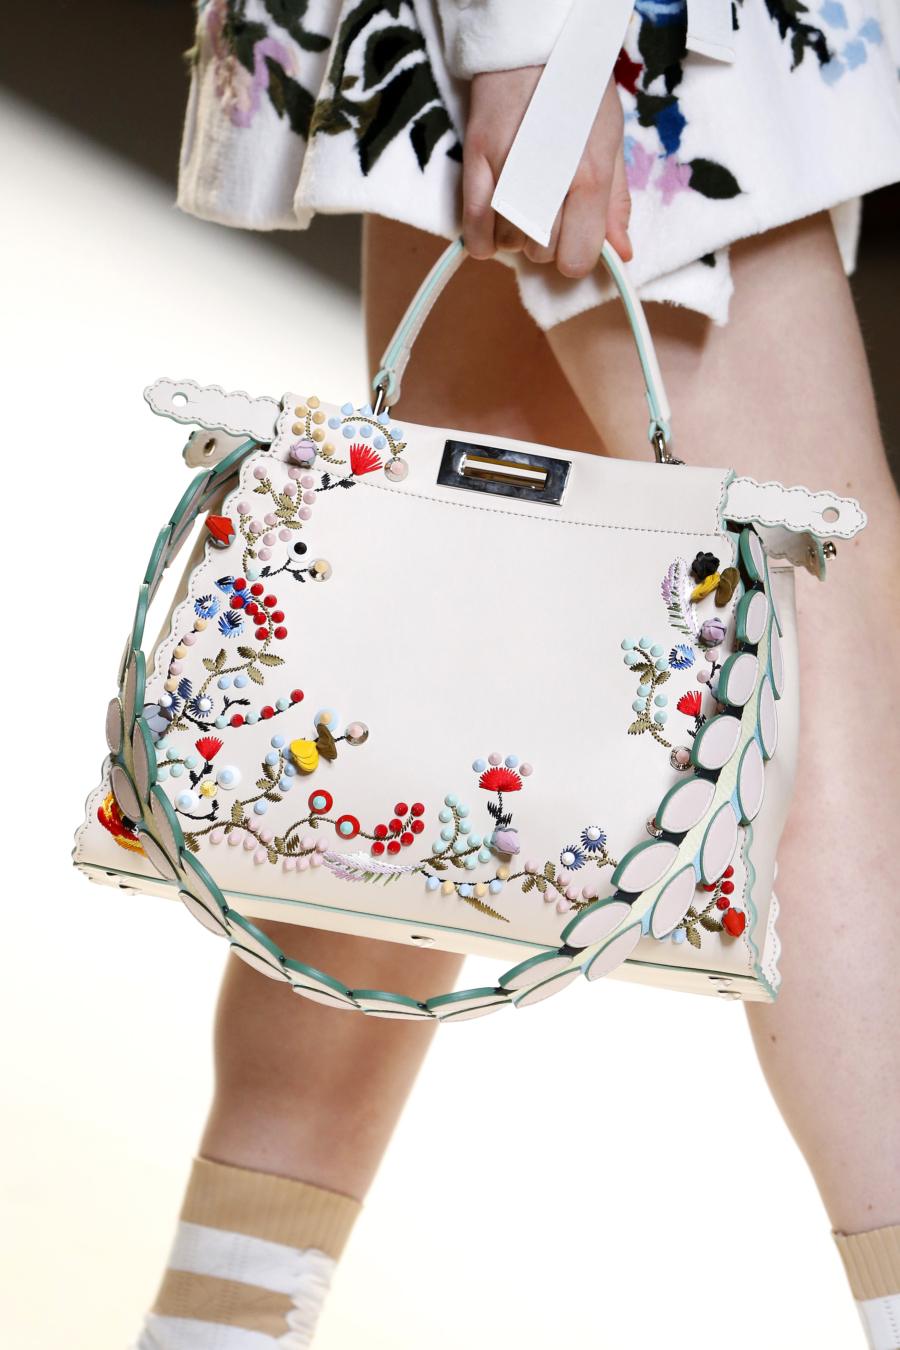 Floral Embroidered Bag - 7 Pieces That Look Adorable With Flower Embroidery // Notjessfashion.com